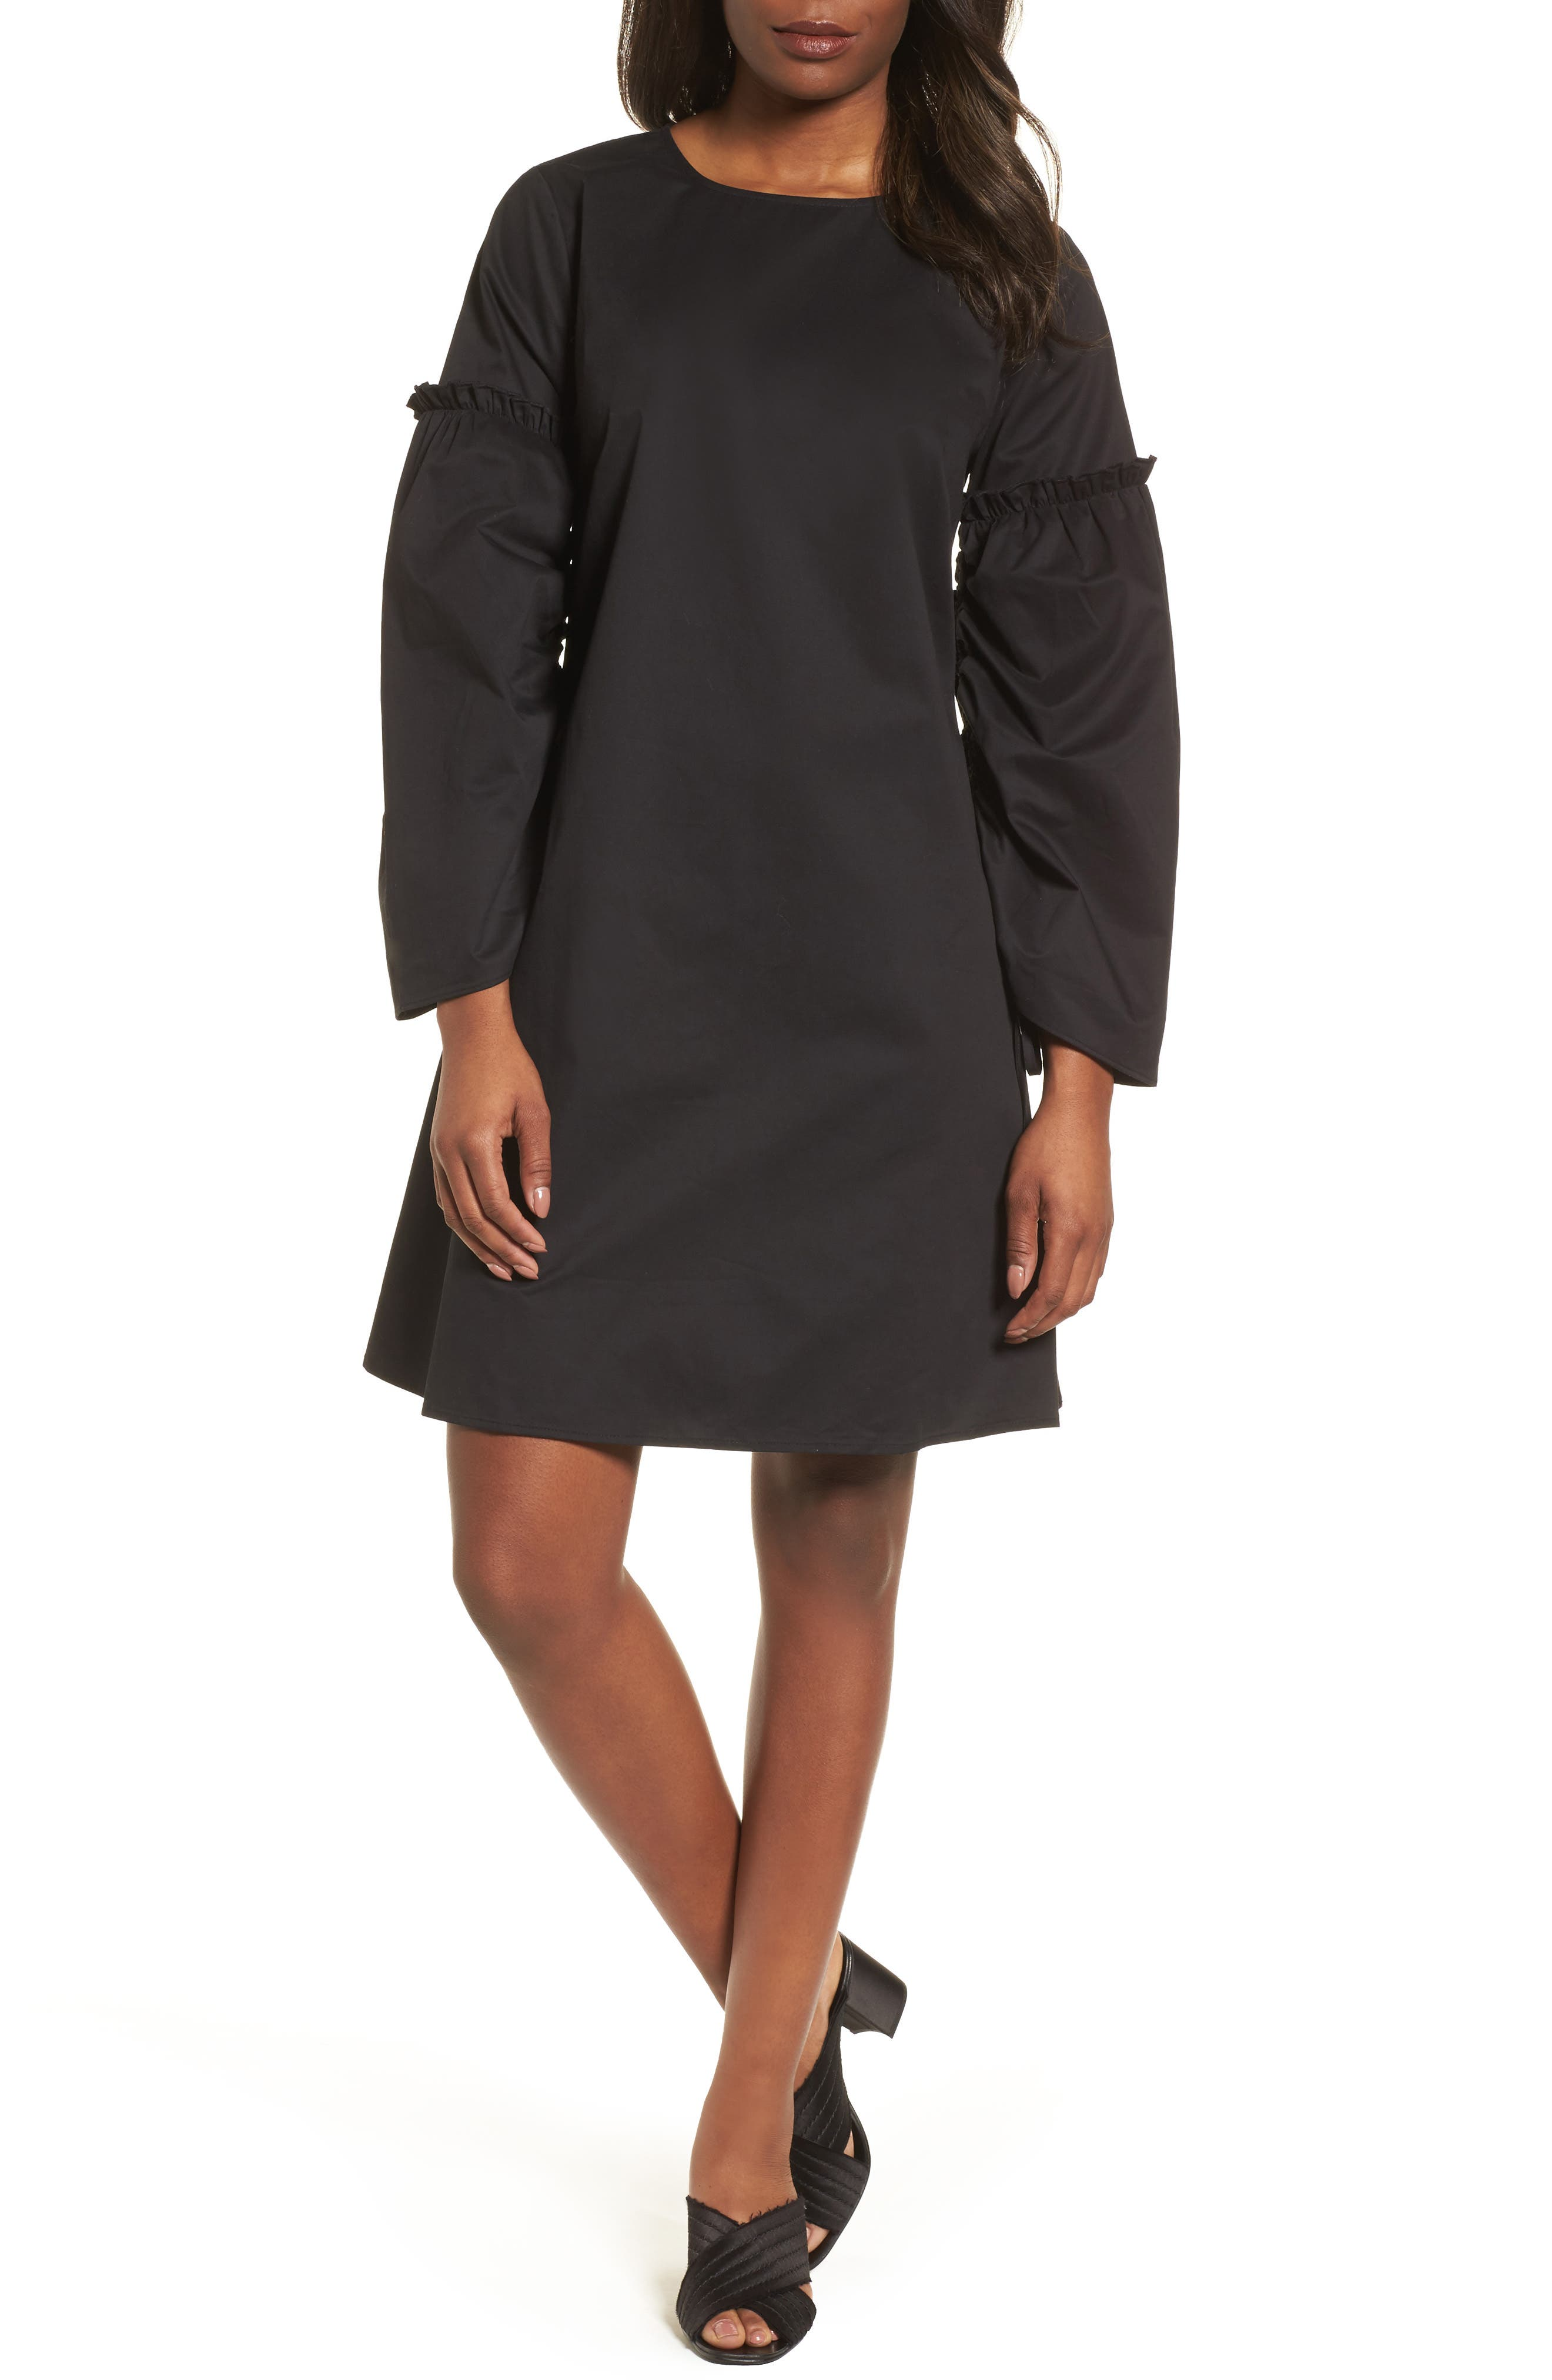 Parachute Sleeve Shift Dress,                             Main thumbnail 1, color,                             001